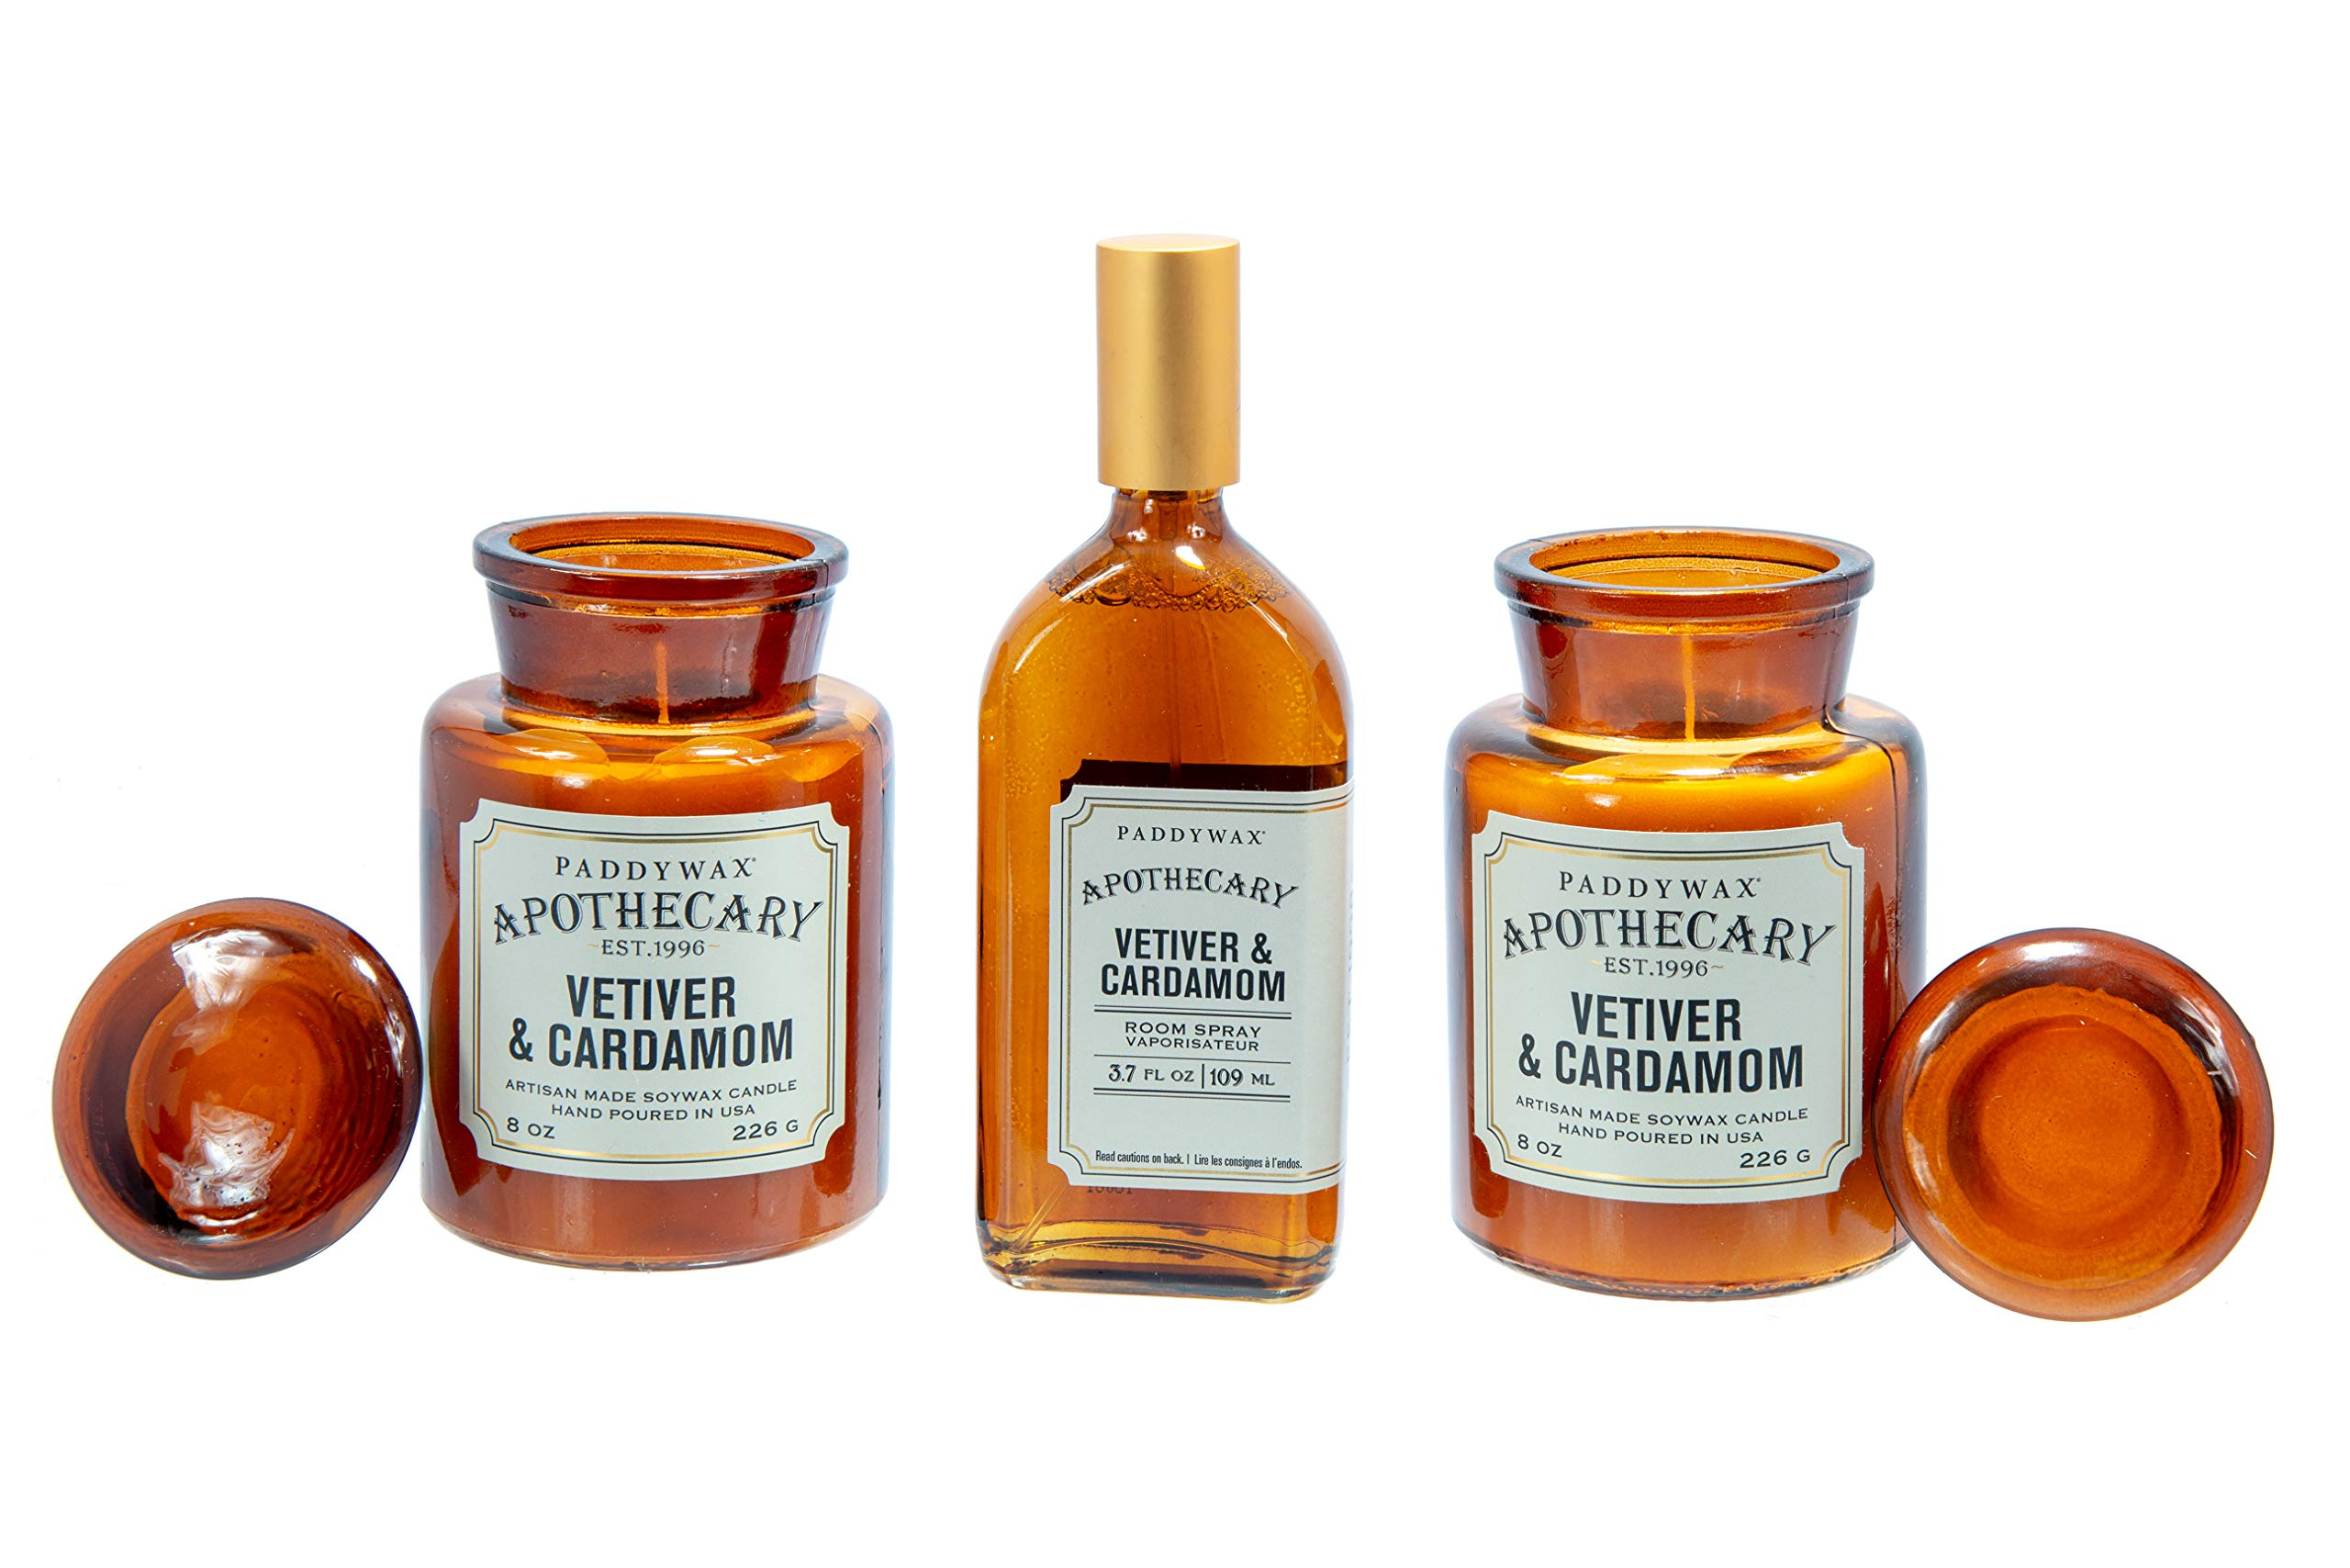 Paddywax Apothecary Collection Scented Soy Wax Jar Candle - Set of 2, with Paddywax Apothecary Room Spray, Vetiver & Cardamom